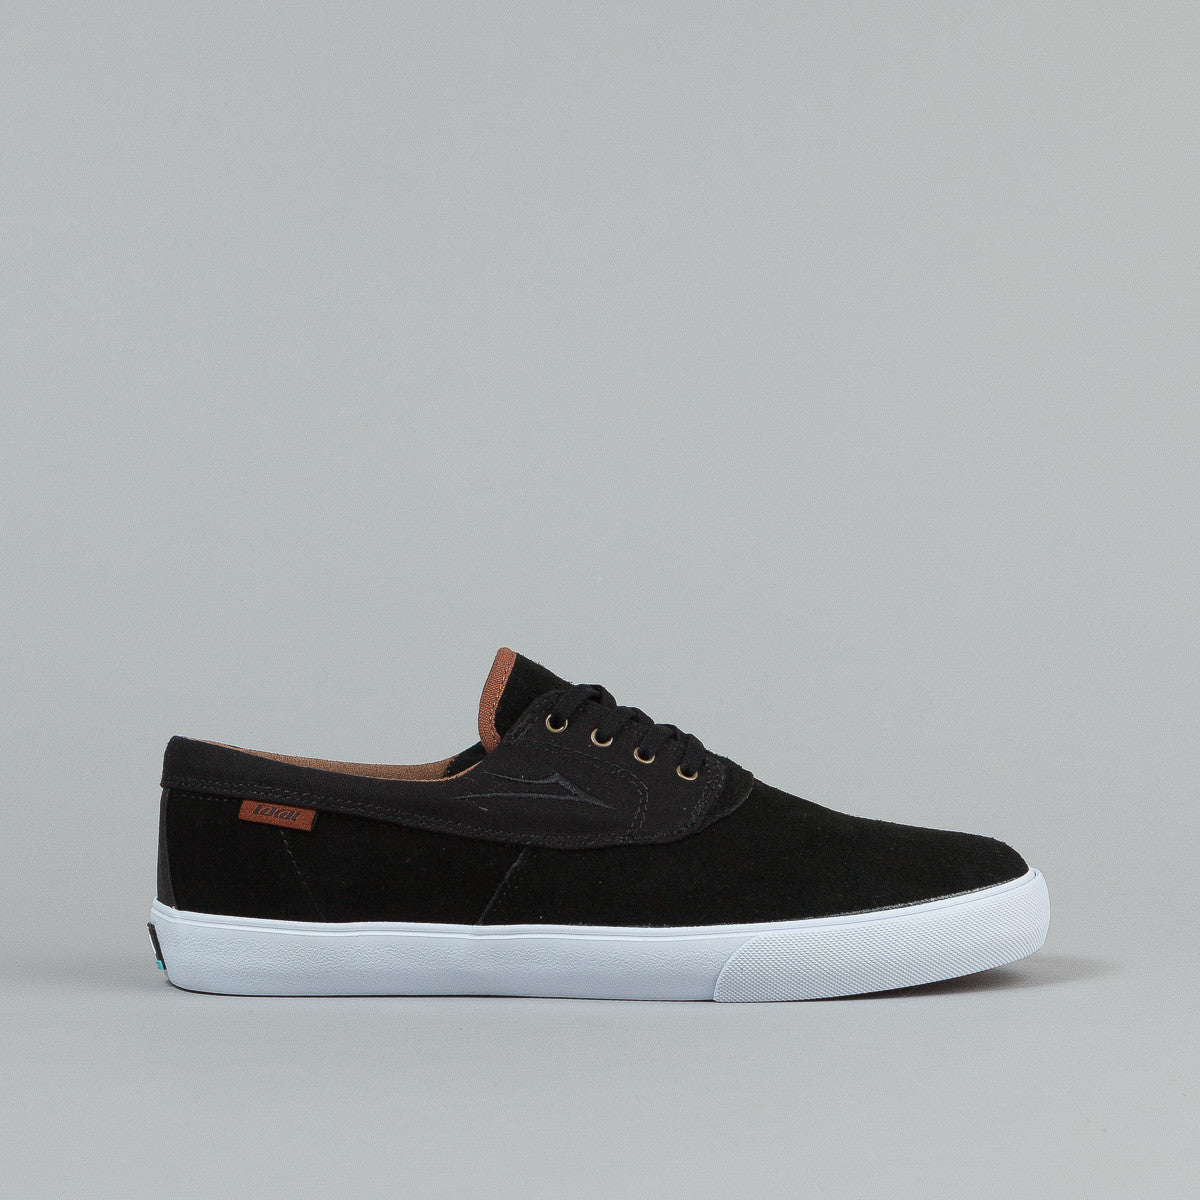 Lakai Anchor Camby Nesser Shoes Black Suede